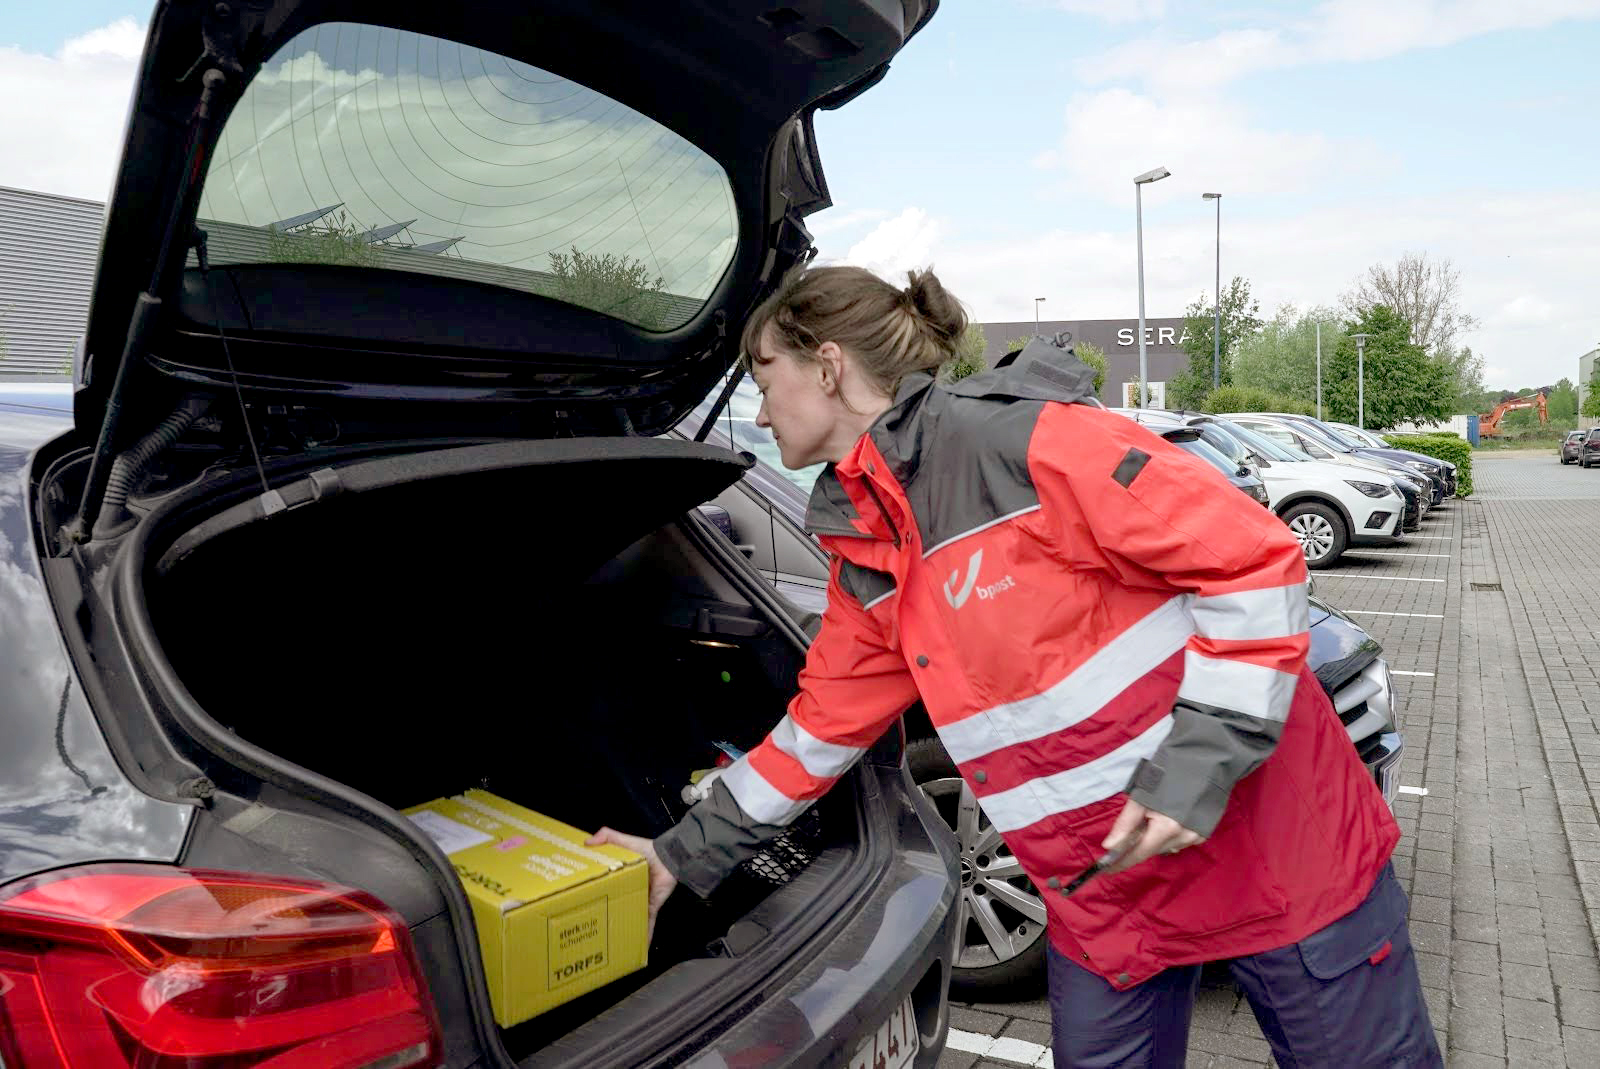 A SOLUTION? - This spring, bpost is testing a new service to deliver parcels directly in the trunk of employees' cars while they're at work. The test is focused on finding out how customers interact and respond to this new service.